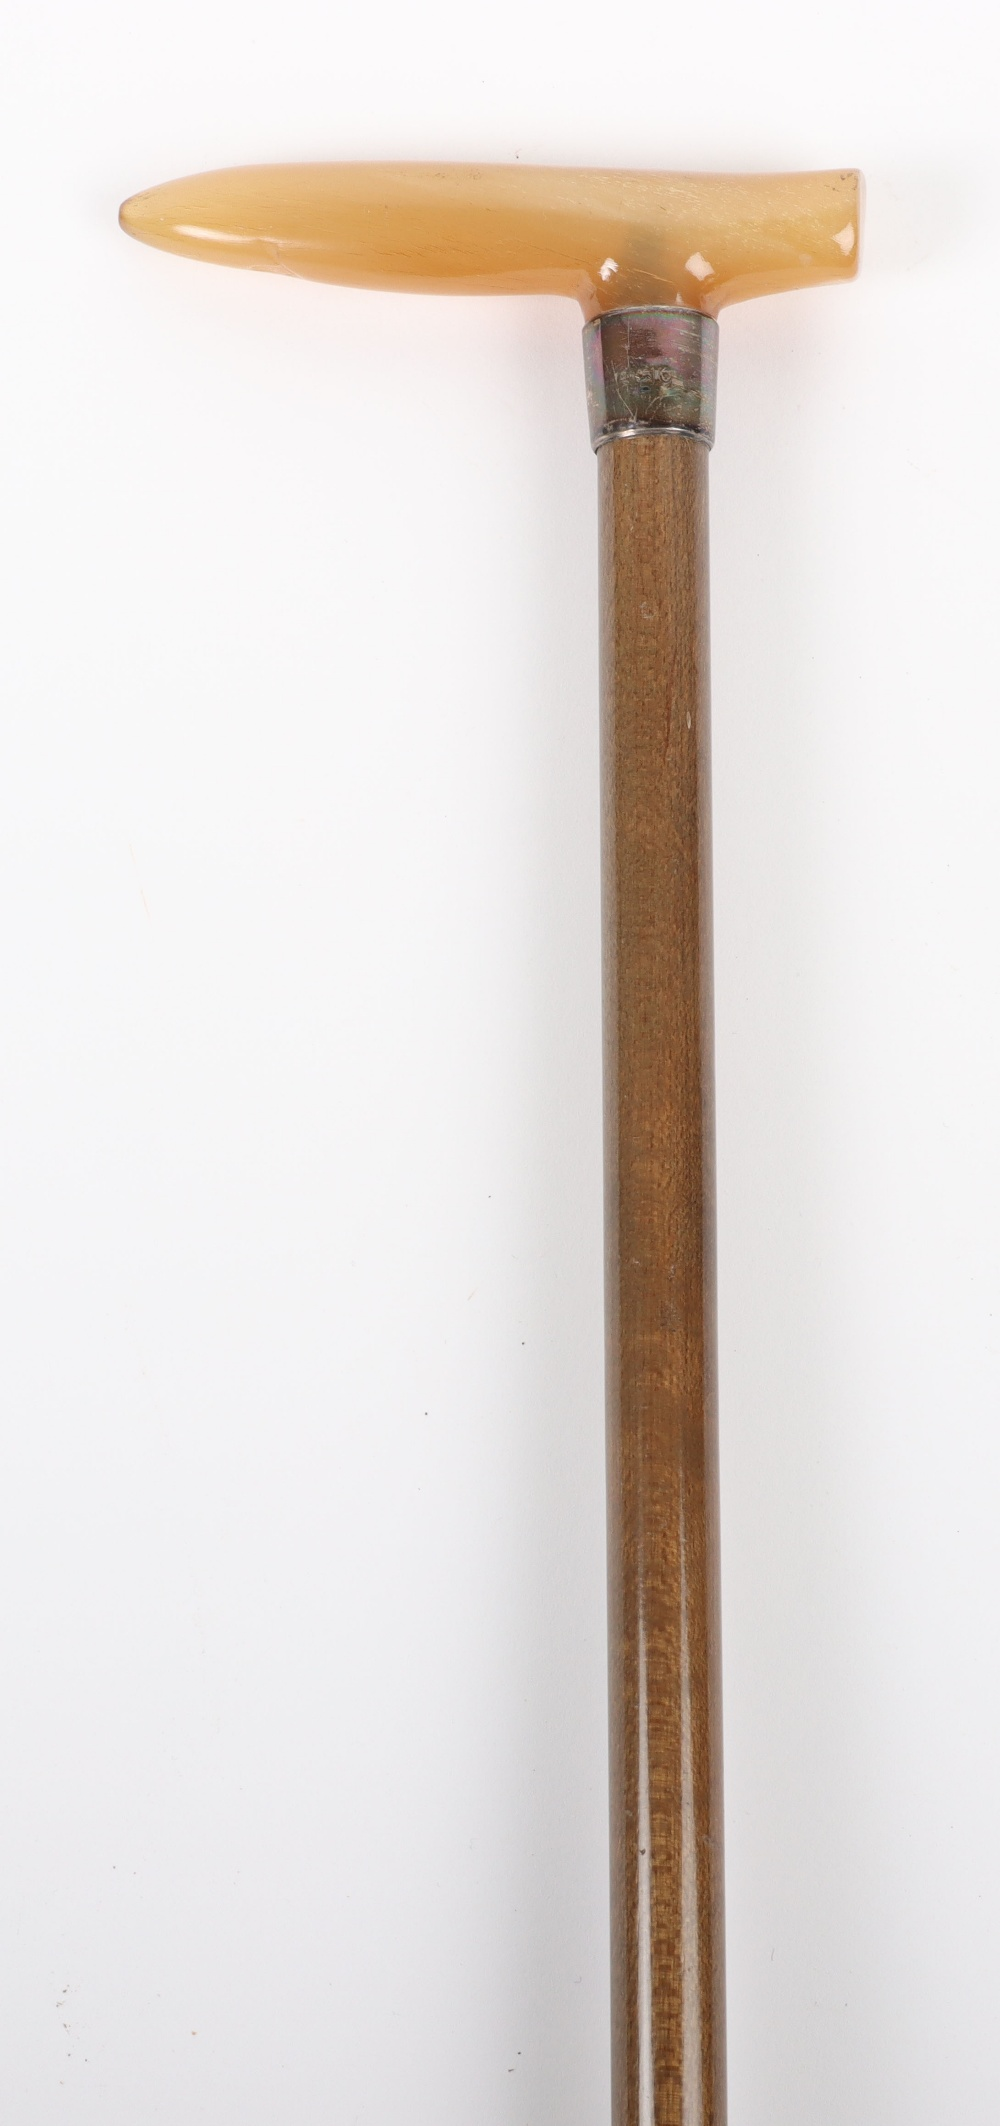 A fine early 20th century ladies walking stick